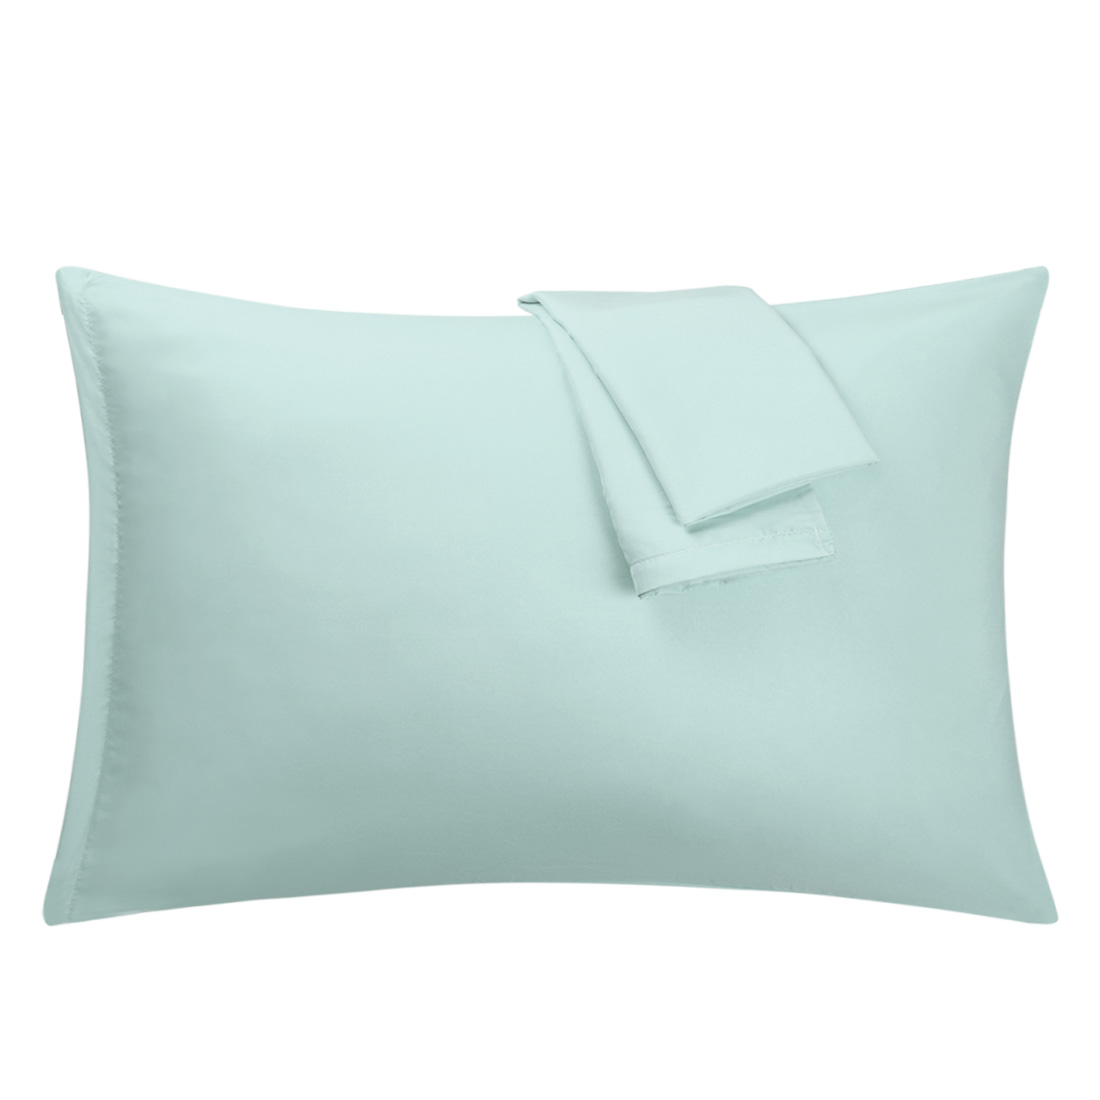 Light Green Pillowcases Soft Microfiber Pillow Case with Zipper King, 2 Pack